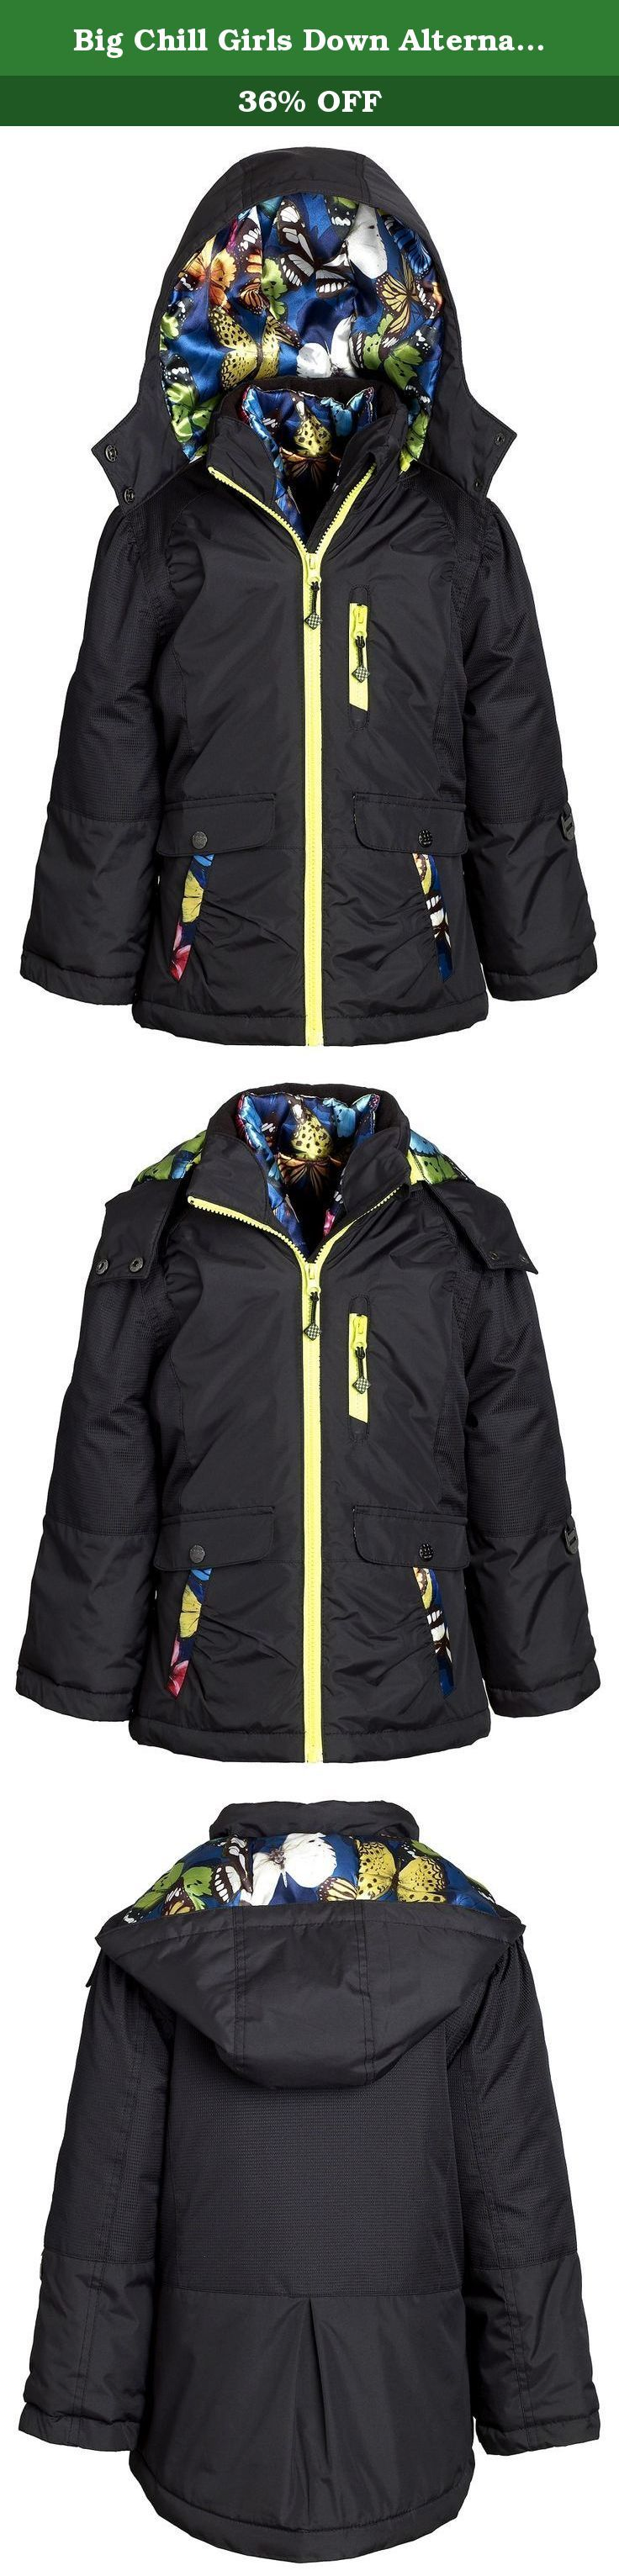 Big Chill Girls Down Alternative Winter 3-in-1 System Puffer Bubble Jacket Coat - Black (Size 7/8). This Big Chill system jacket ensures warmth and comfort on icy days. Its padded shell and fleece lined mock neck provide toastiness and superior protection. inner fleece cuffs for added insulation. Features a padded inner puffer vest and detachable hood. Available in sizes 4 to 16 and in colors beetroot, black, purple and charcoal.